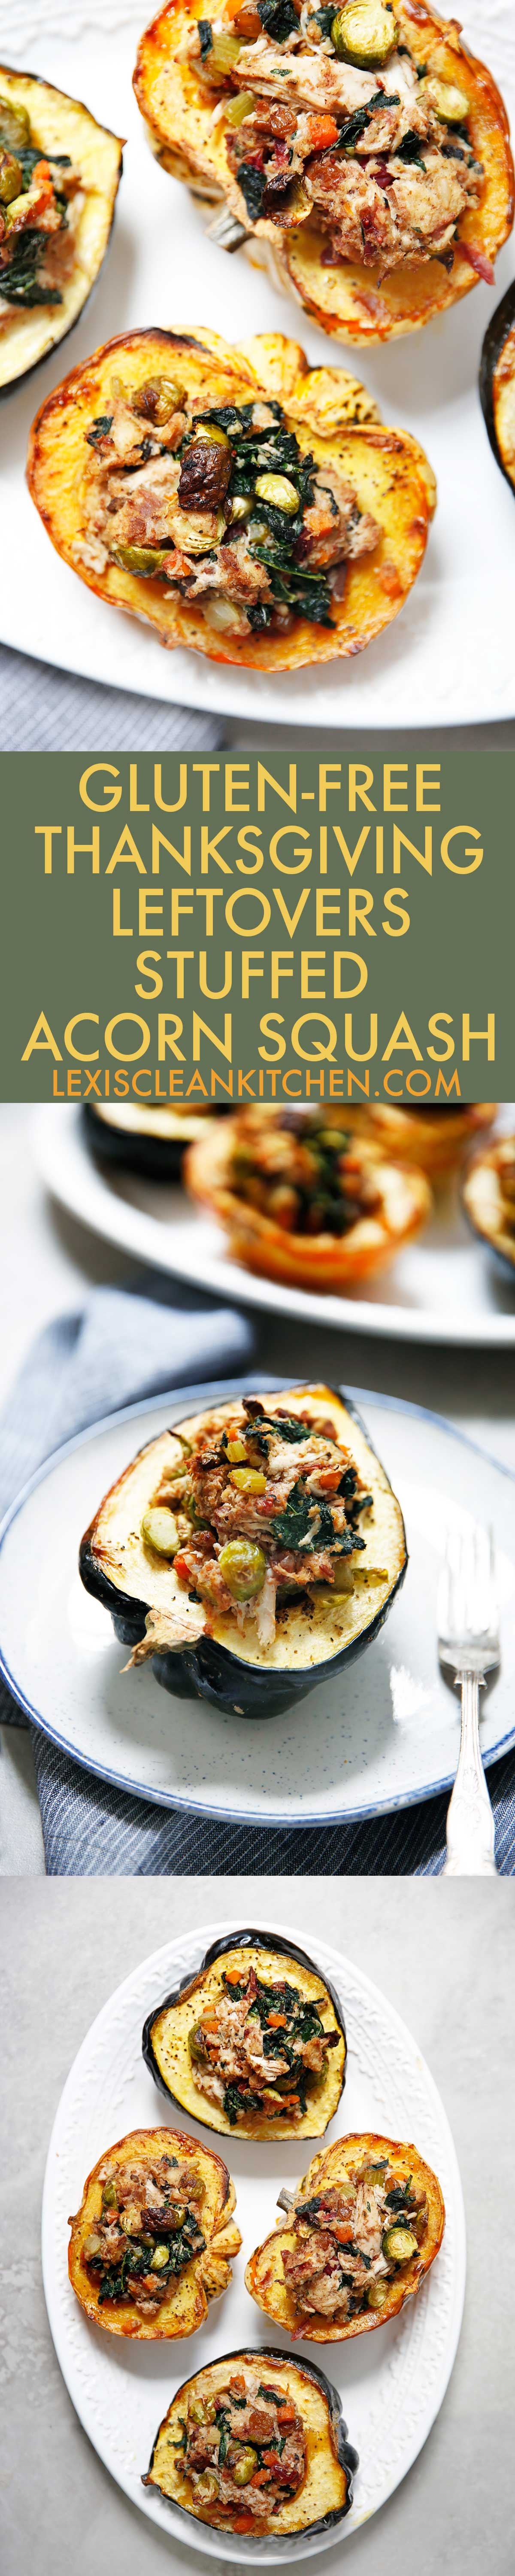 Thanksgiving Leftovers Stuffed Squash (Gluten-Free & Dairy-Free) - Lexi's Clean Kitchen